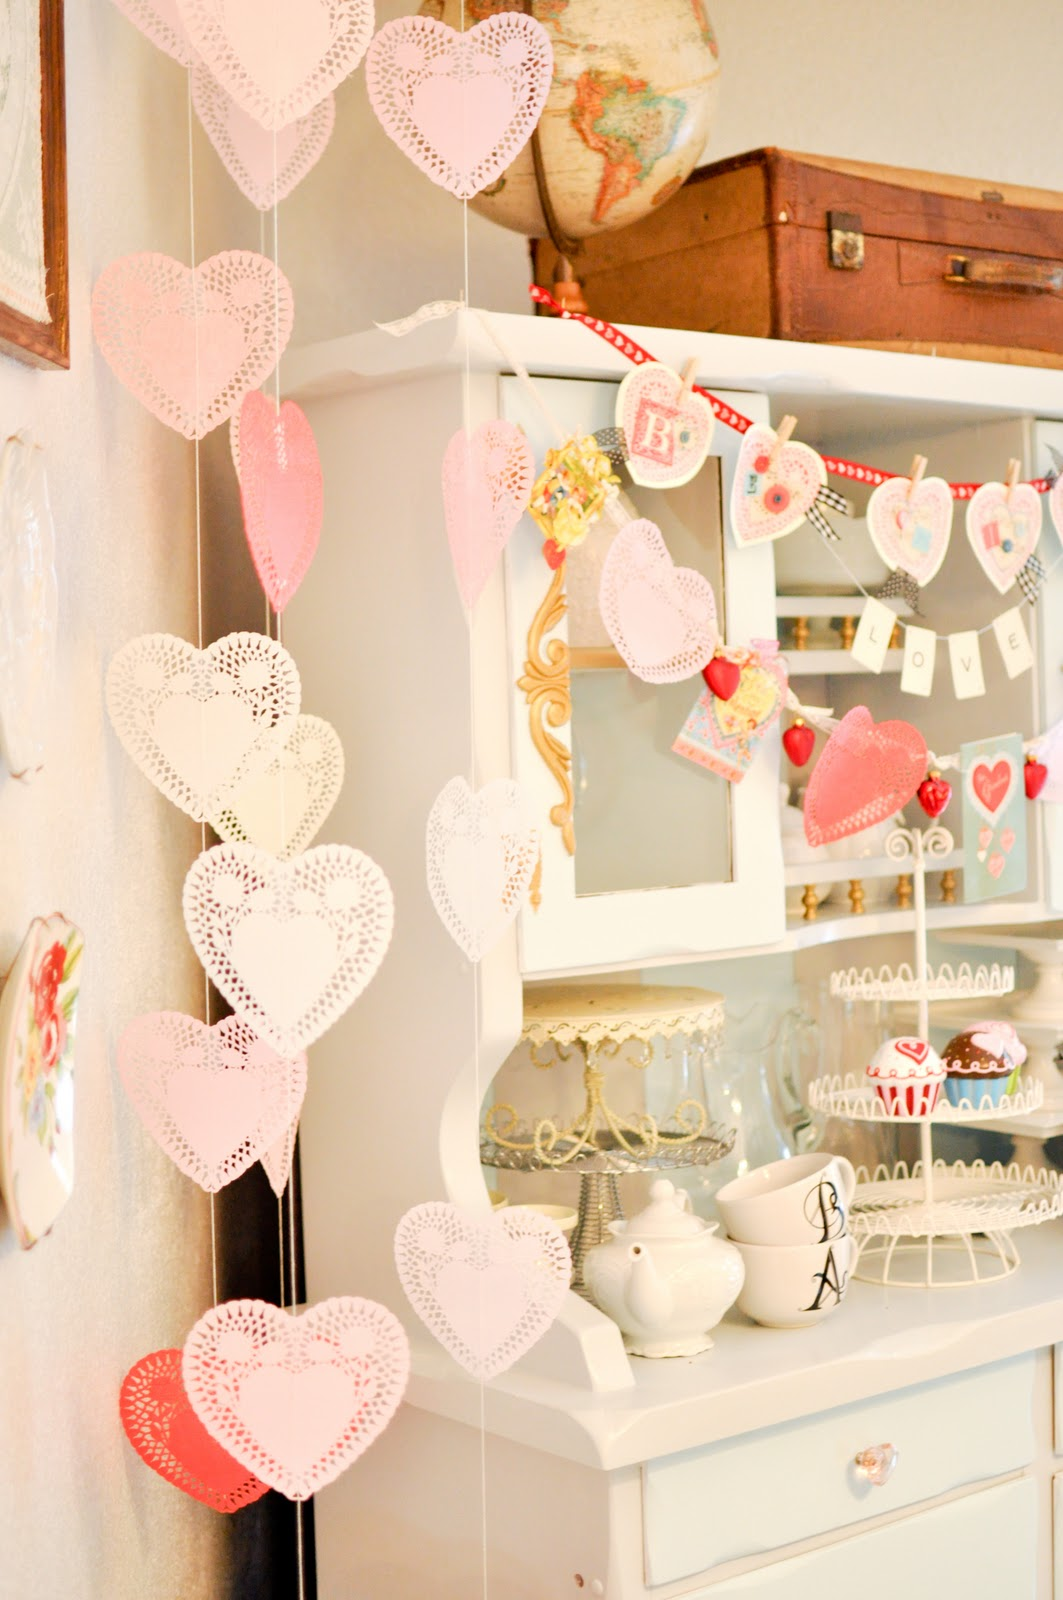 20 valentine 39 s day decorations ideas for your home Decorations for the home